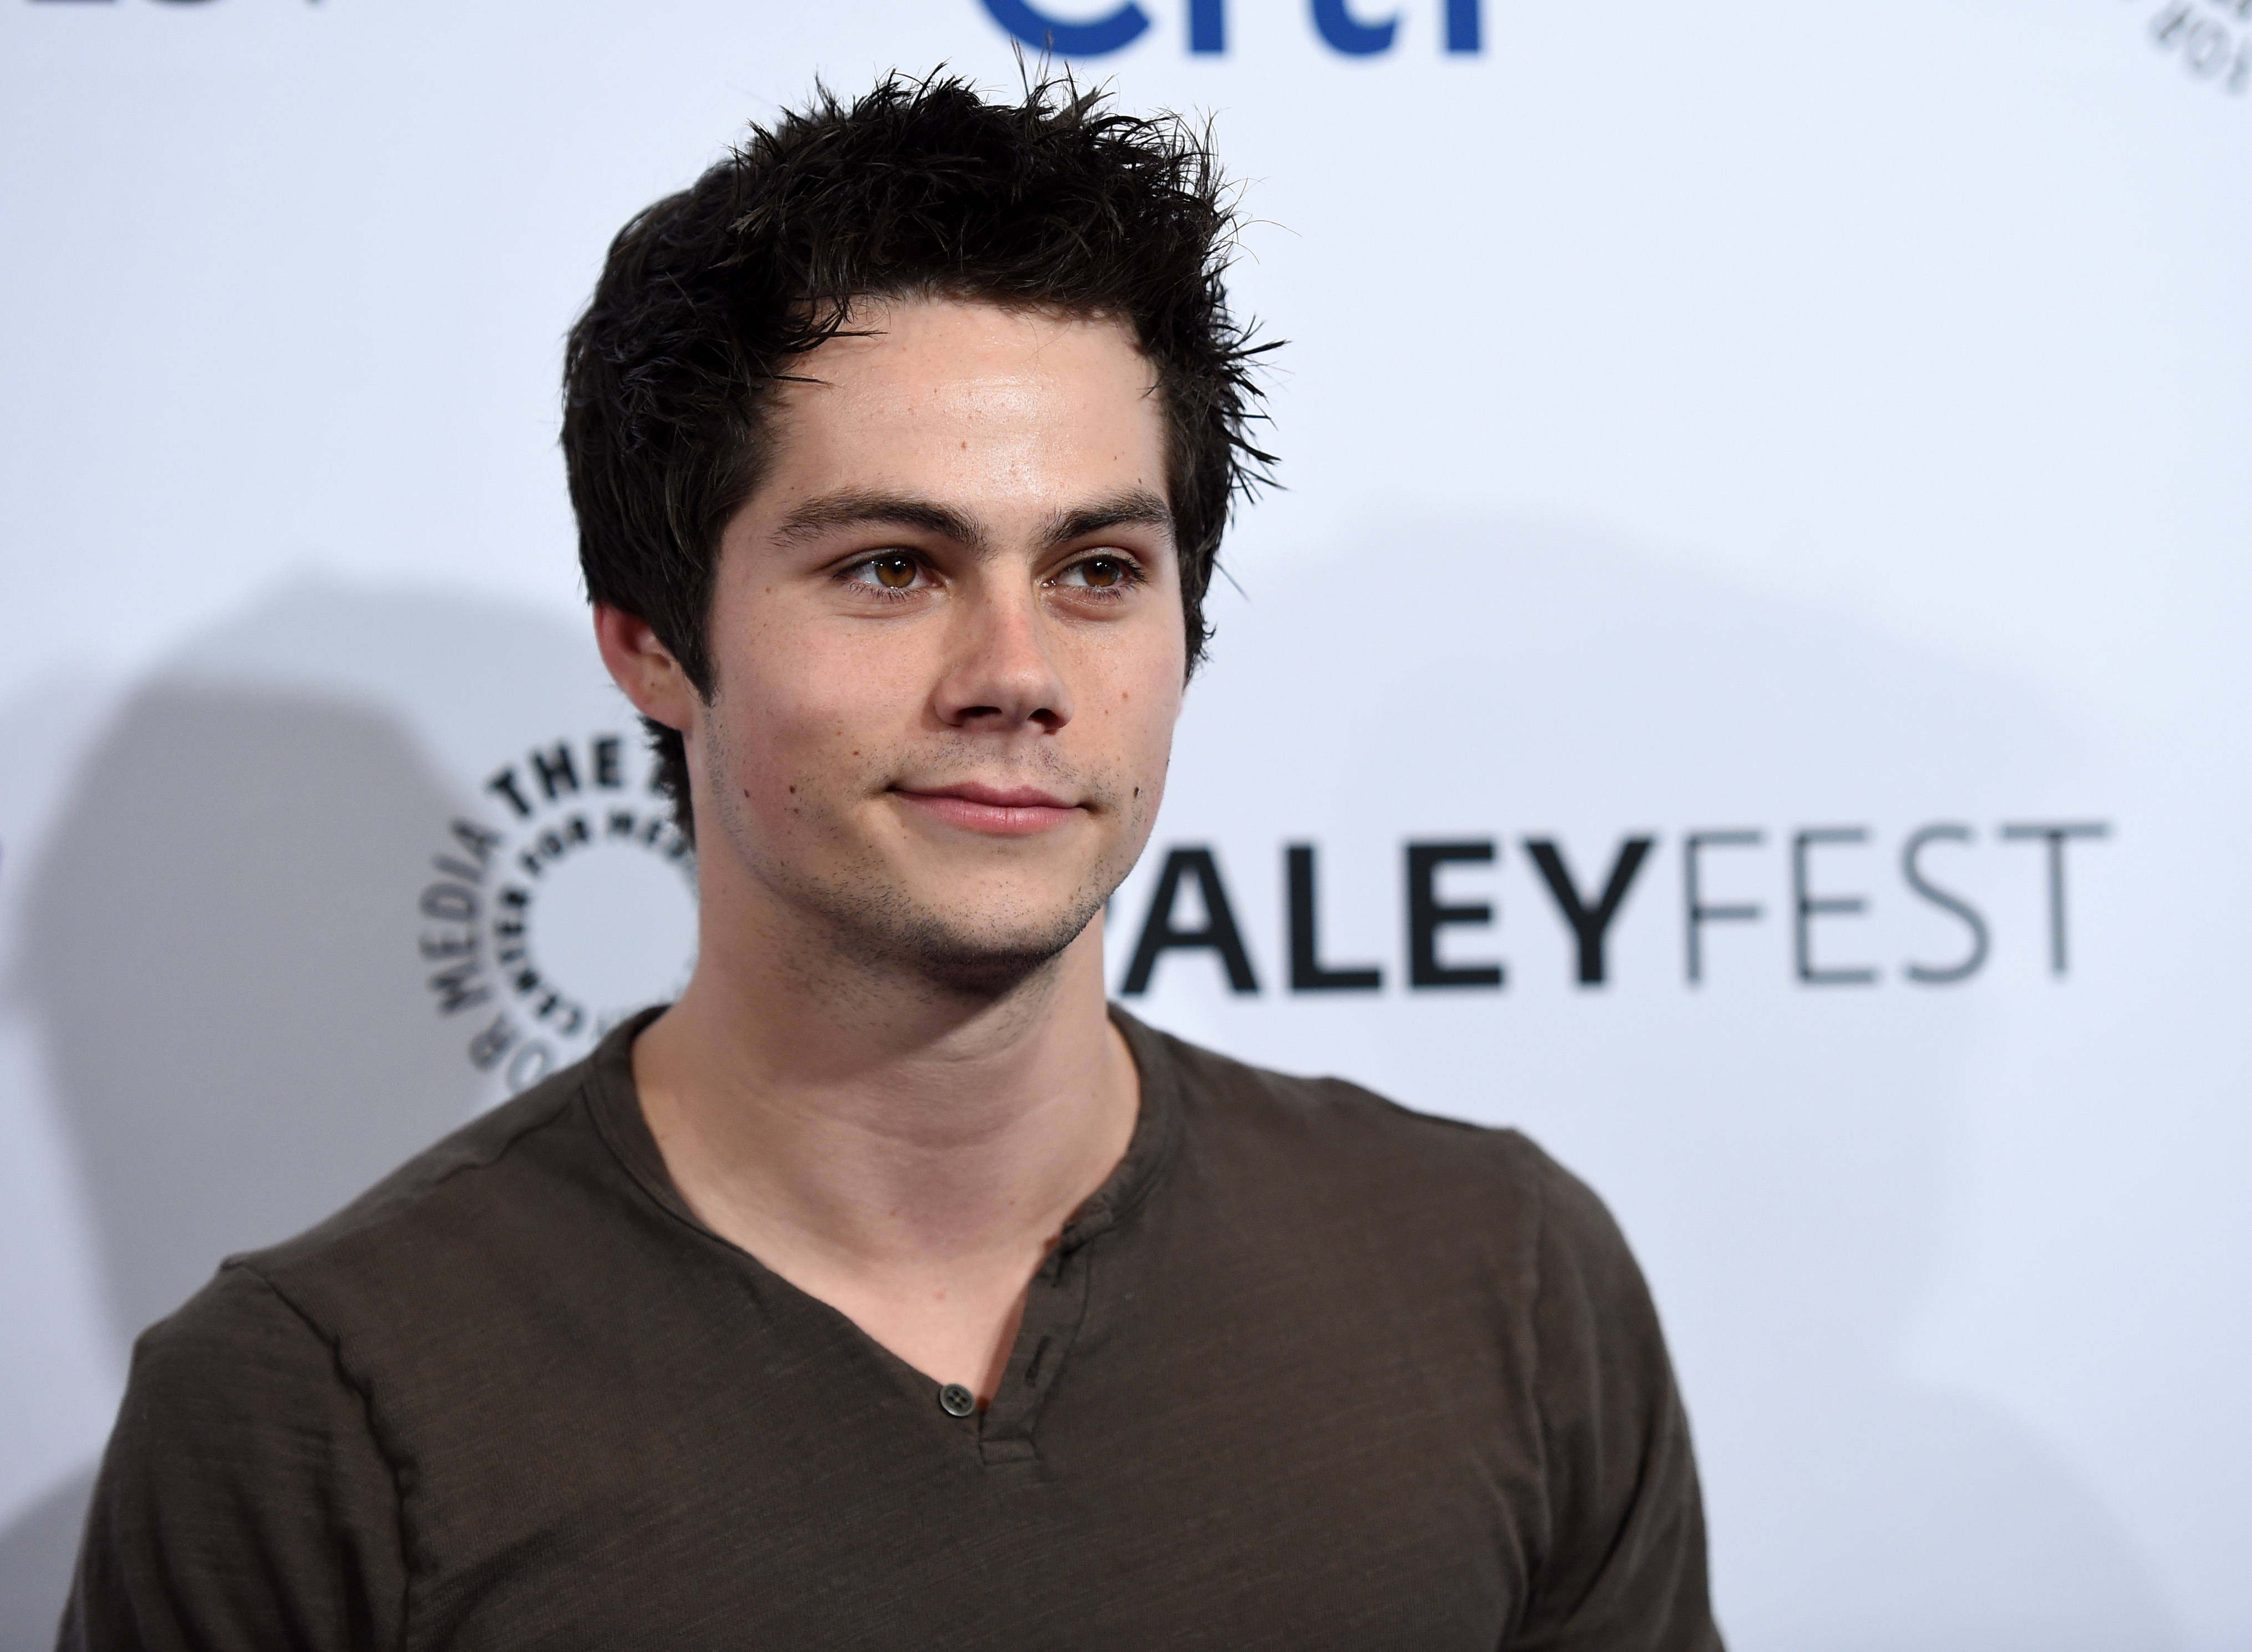 Actor Dylan O'Brien arrives at The Paley Center For Media's 32nd Annual PALEYFEST LA -  Teen Wolf  event at the Dolby Theatre on March 11, 2015 in Hollywood, California.